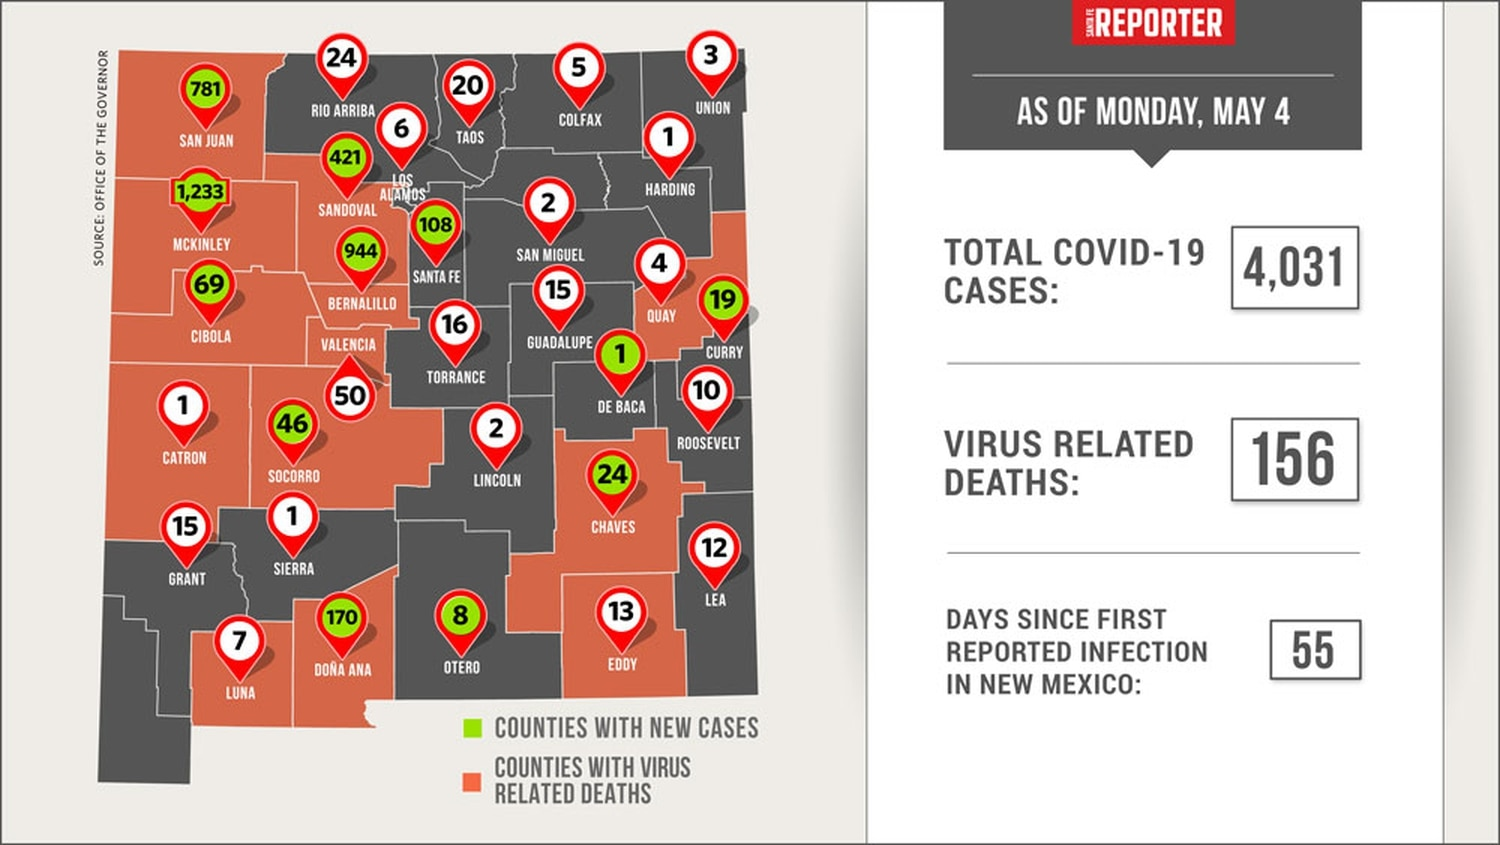 Monroe County's latest coronavirus numbers: 19 new cases and 1 more death